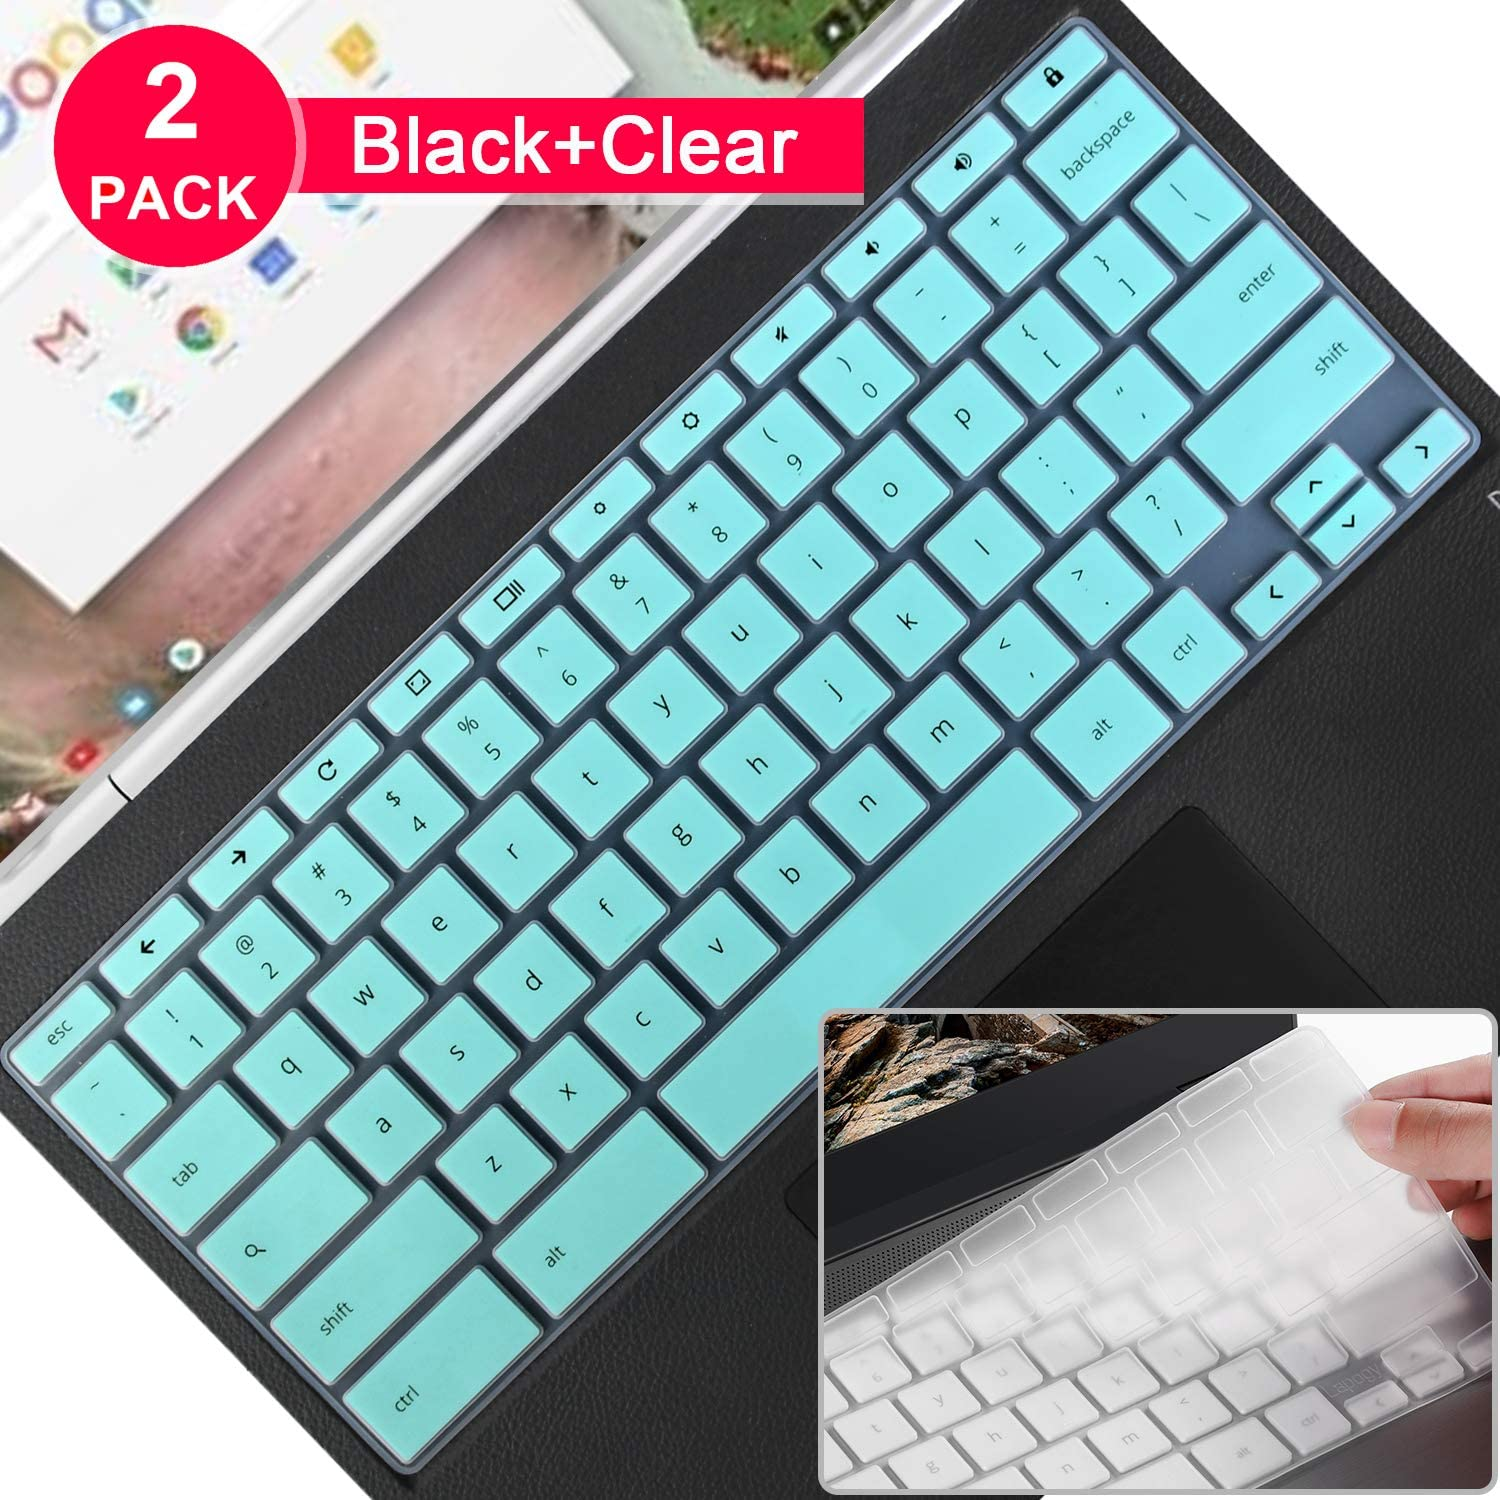 """2 pcs Lapogy Keyboard Cover Skin Compatible HP chromebook X2 2-in-1 12.3/14inch Touch-Screen Chromebook, 2020/2019 HP X360 14"""" HP chromebook 11/14,Premium Ultra Thin Keyboard Protector(Mint+Clear)"""